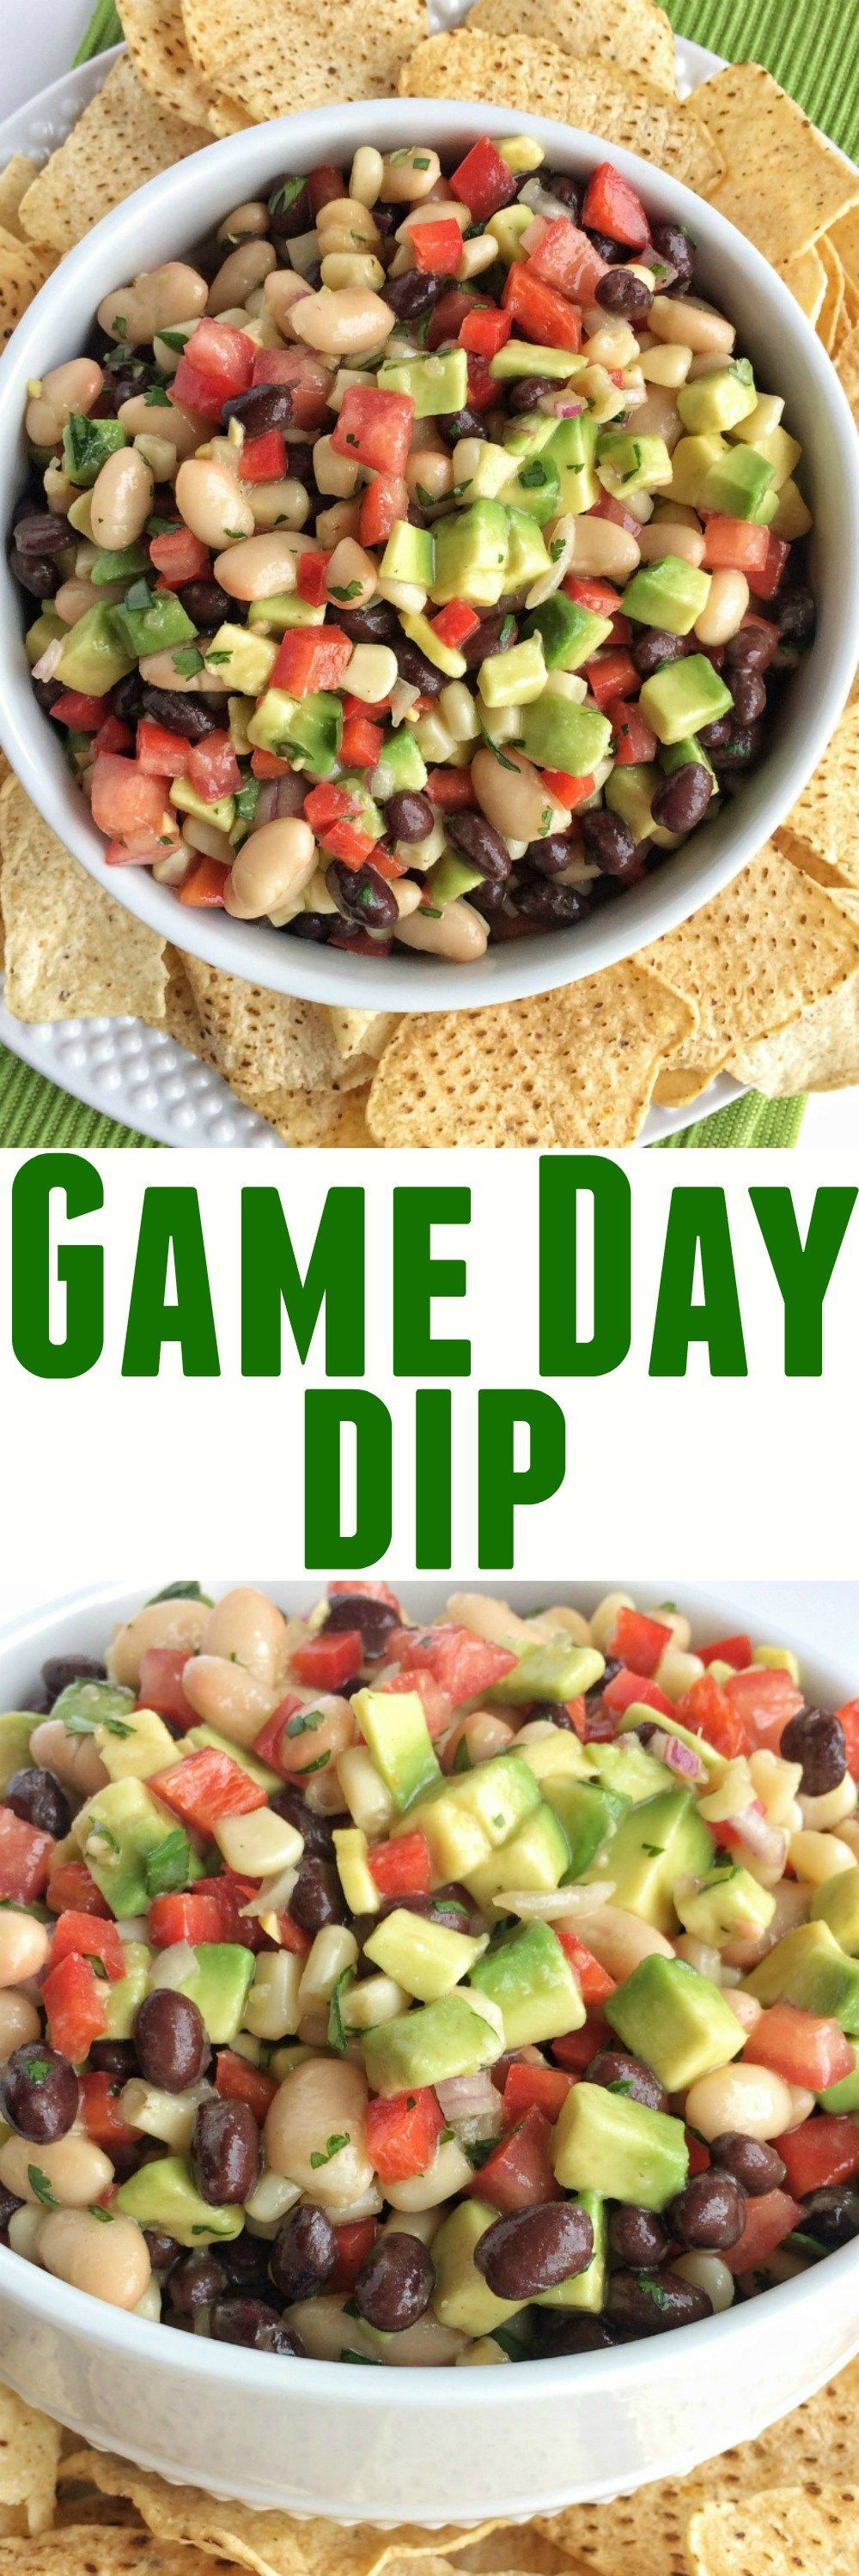 Perfect for game day! Everyone loves this easy dip and